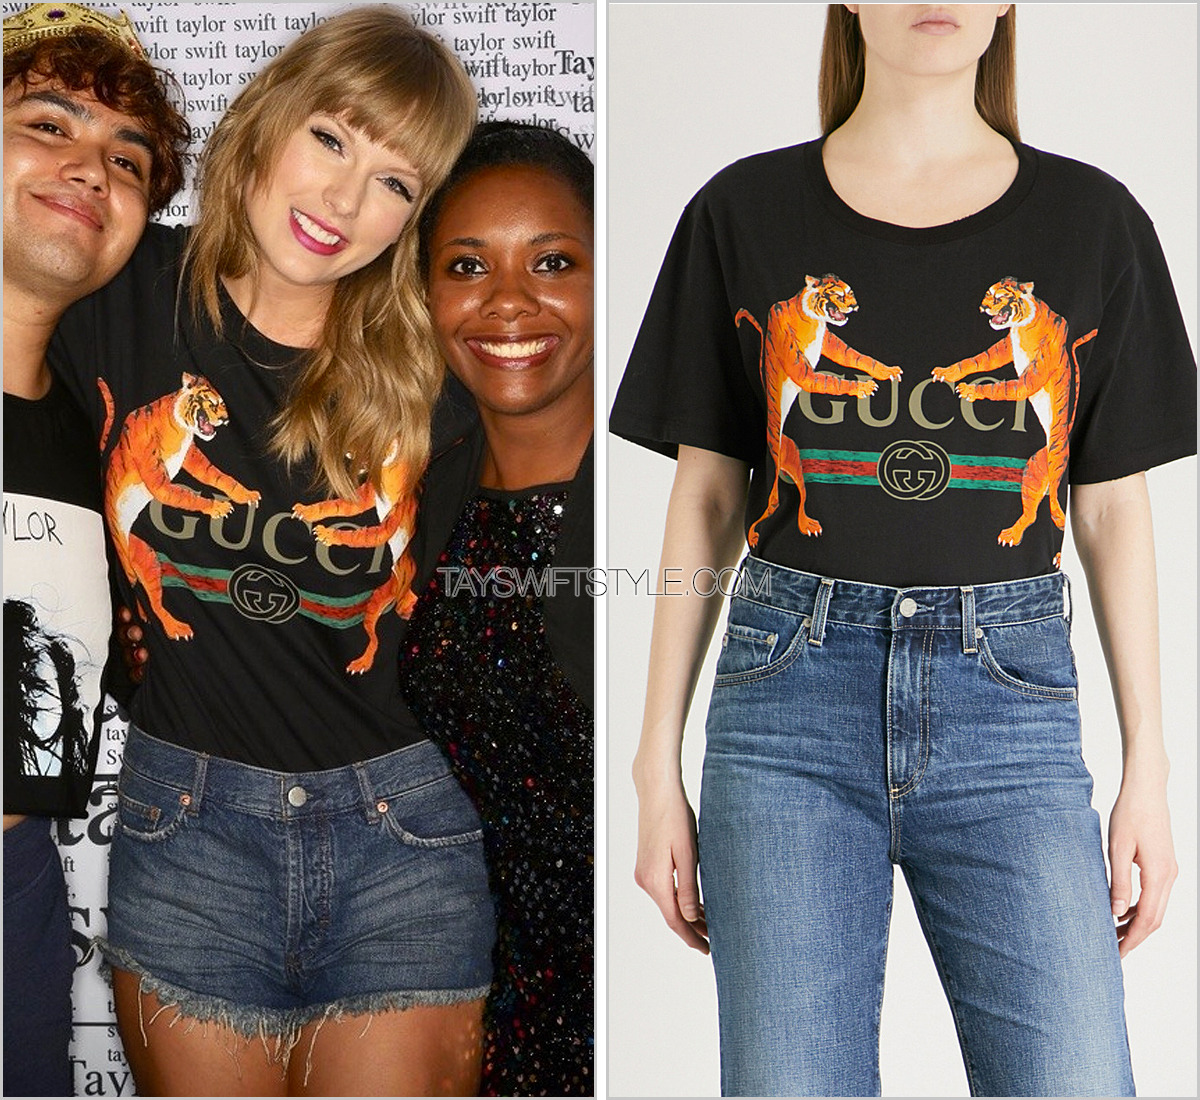 Taylor Swift Style Rep Room Indianapolis In September 15 2018